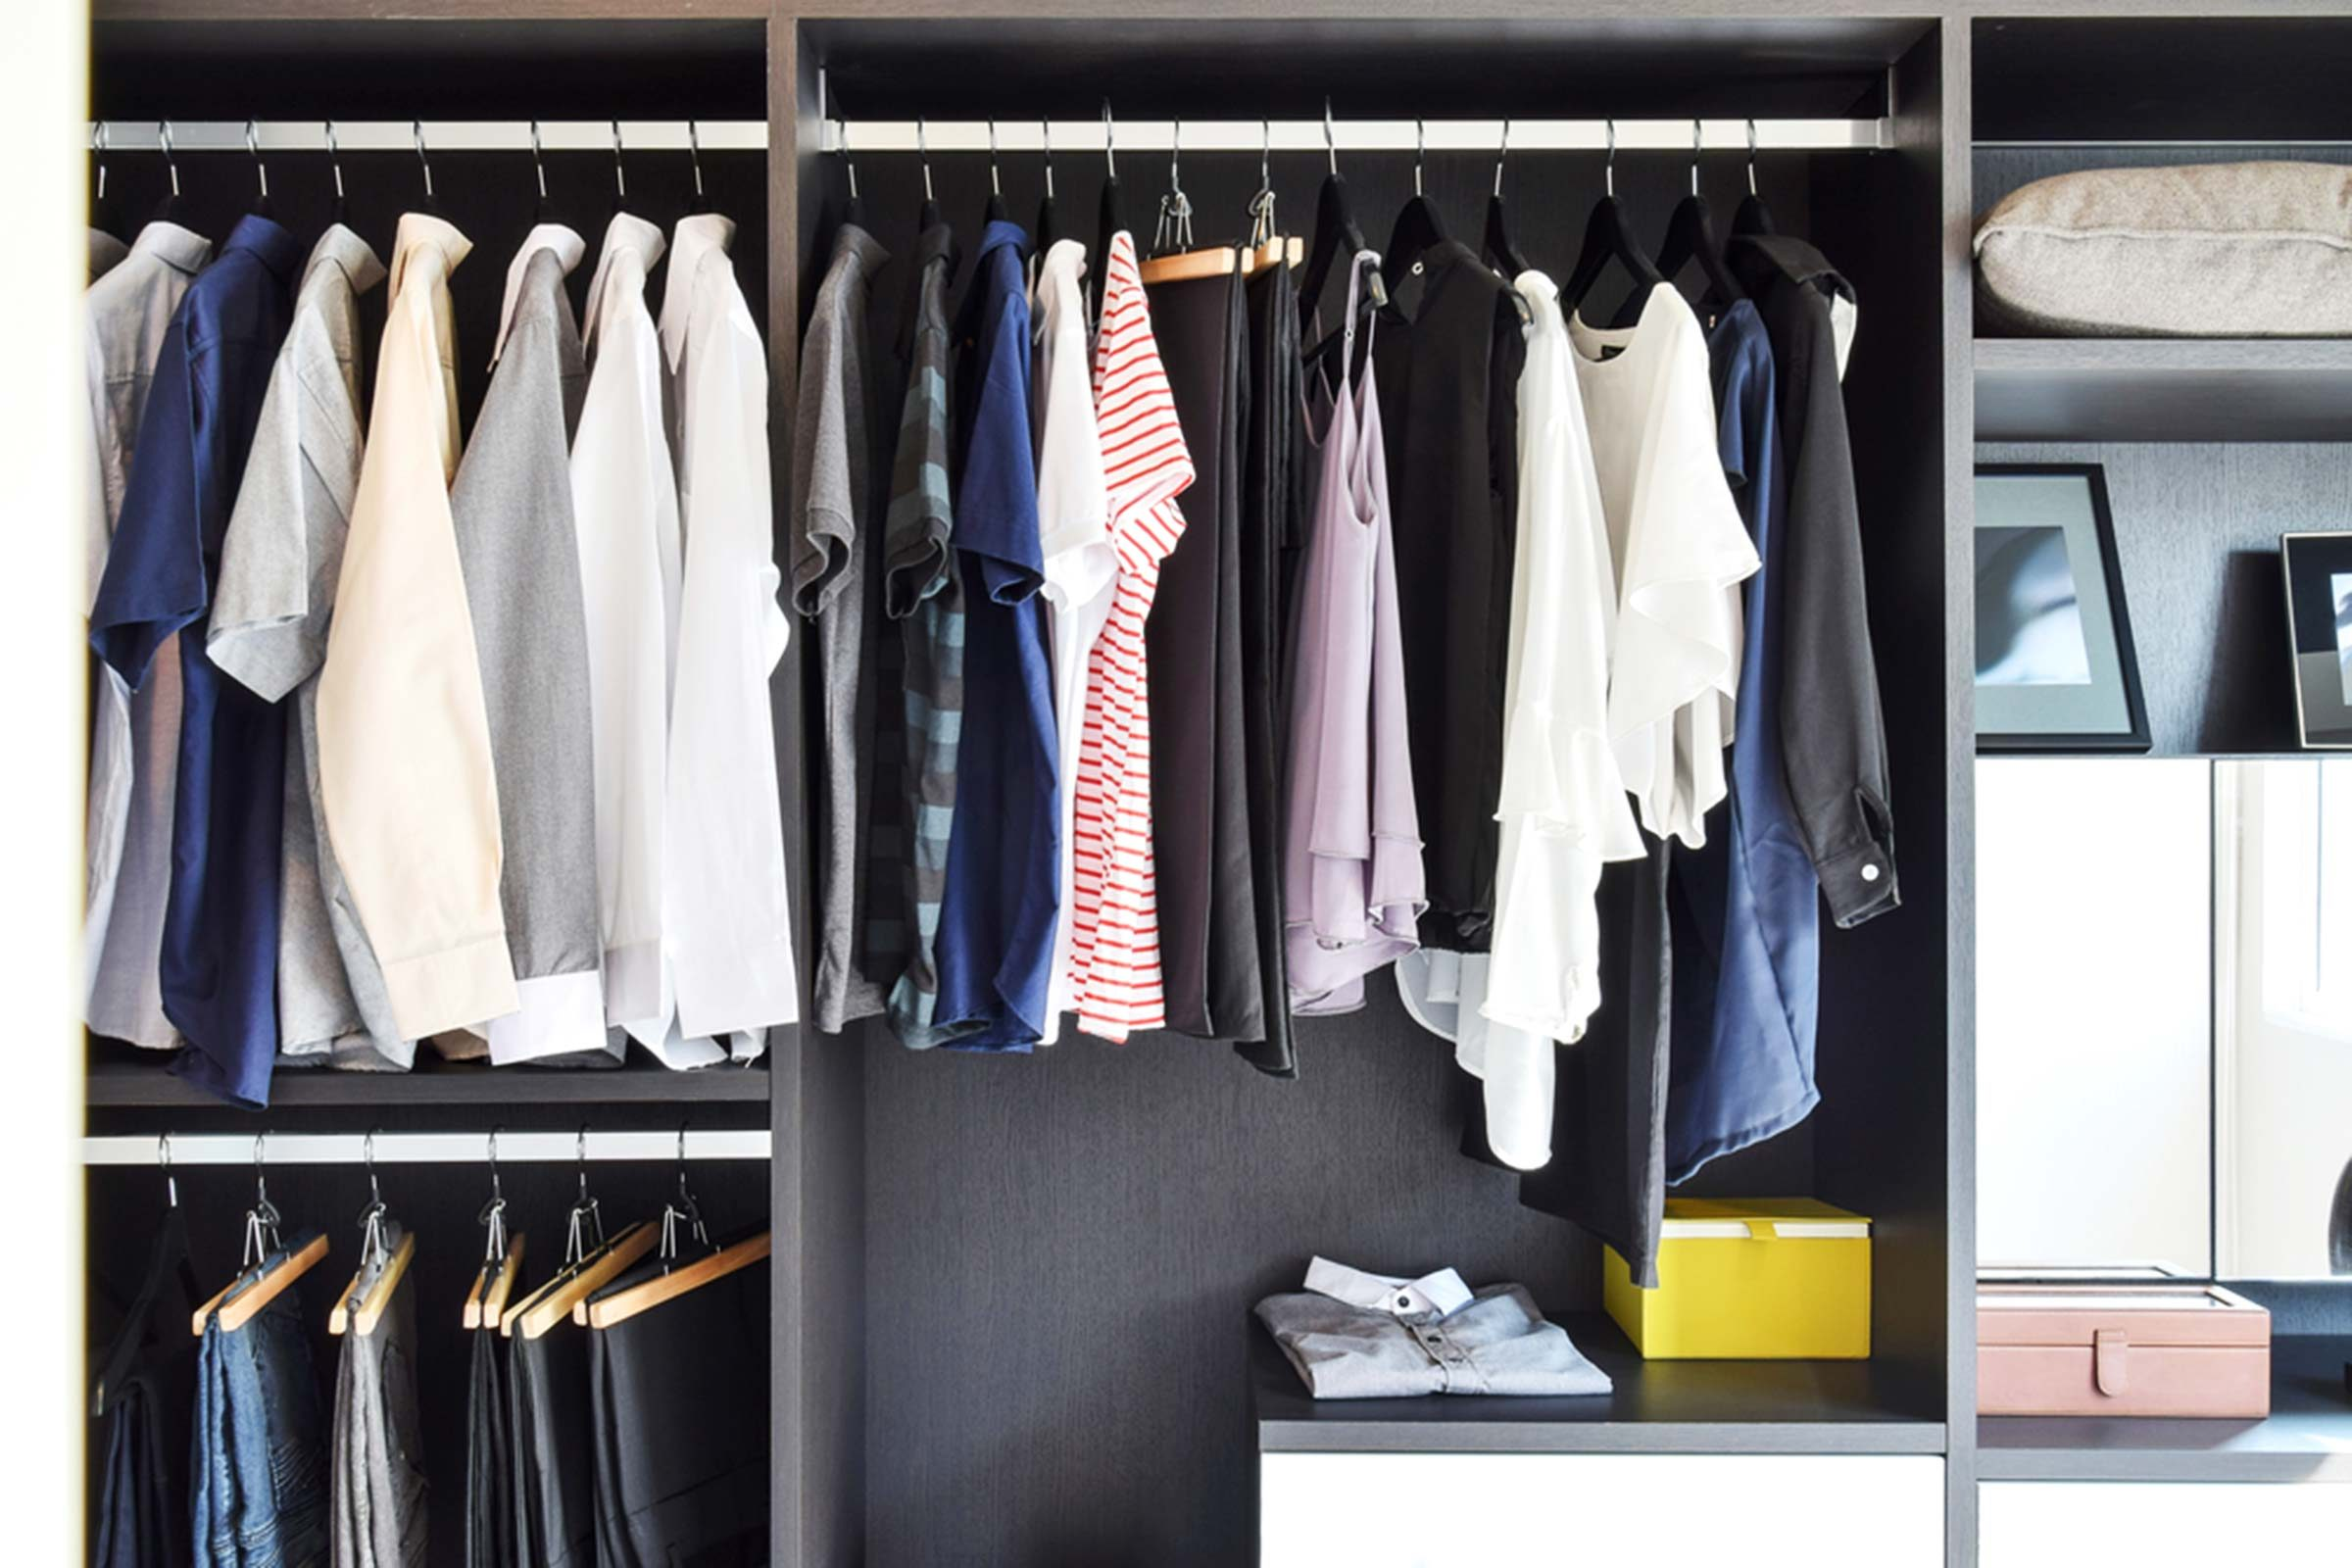 mikhila wardrobe without condense com clothes closet img your condensing